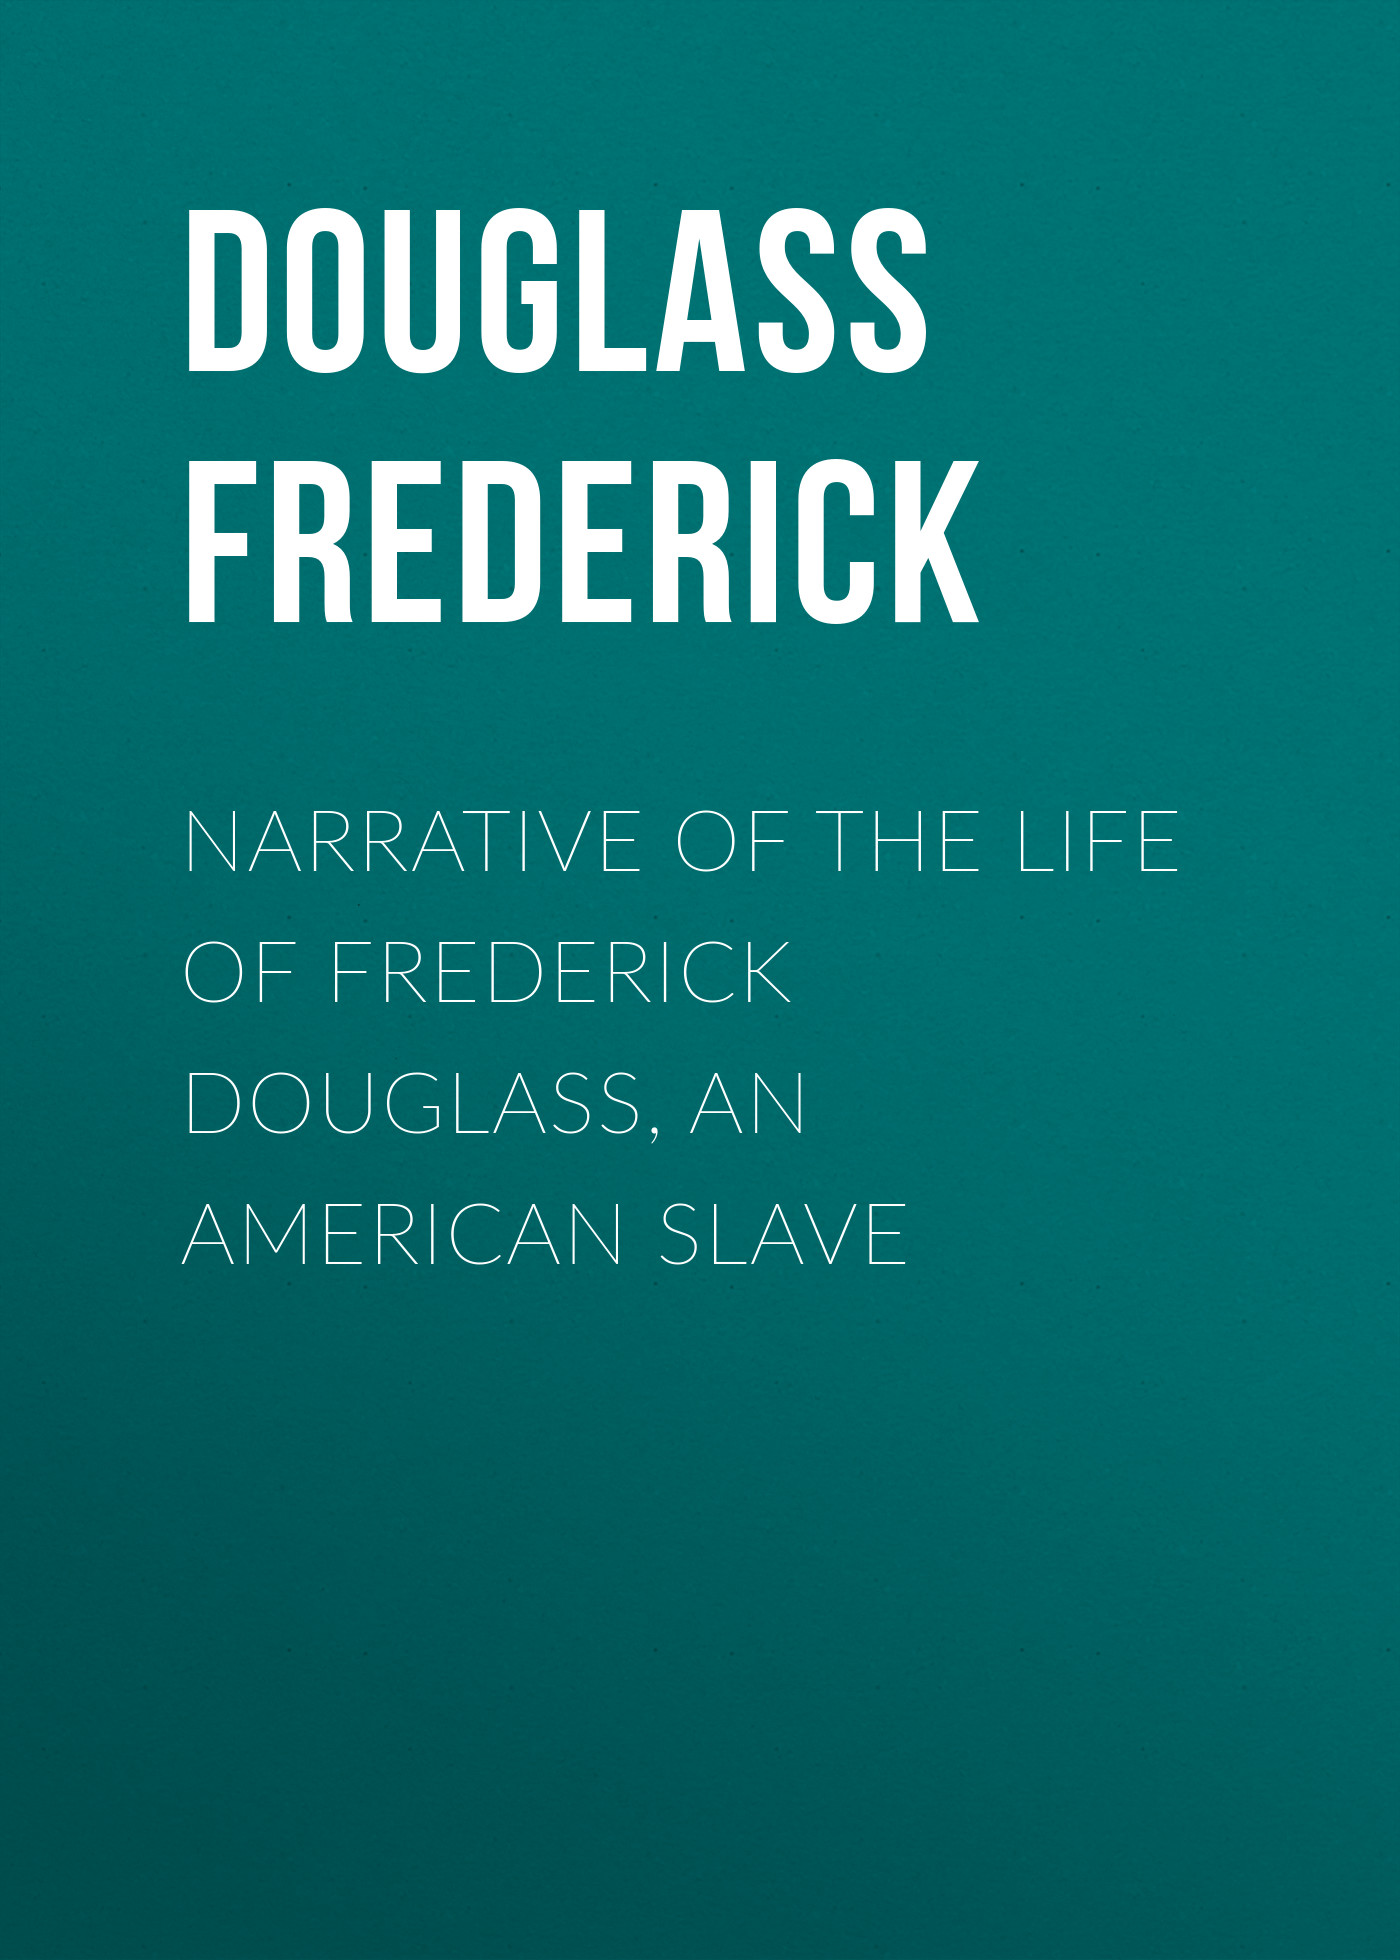 Douglass Frederick Narrative of the Life of Frederick Douglass, an American Slave frederick law olmsted